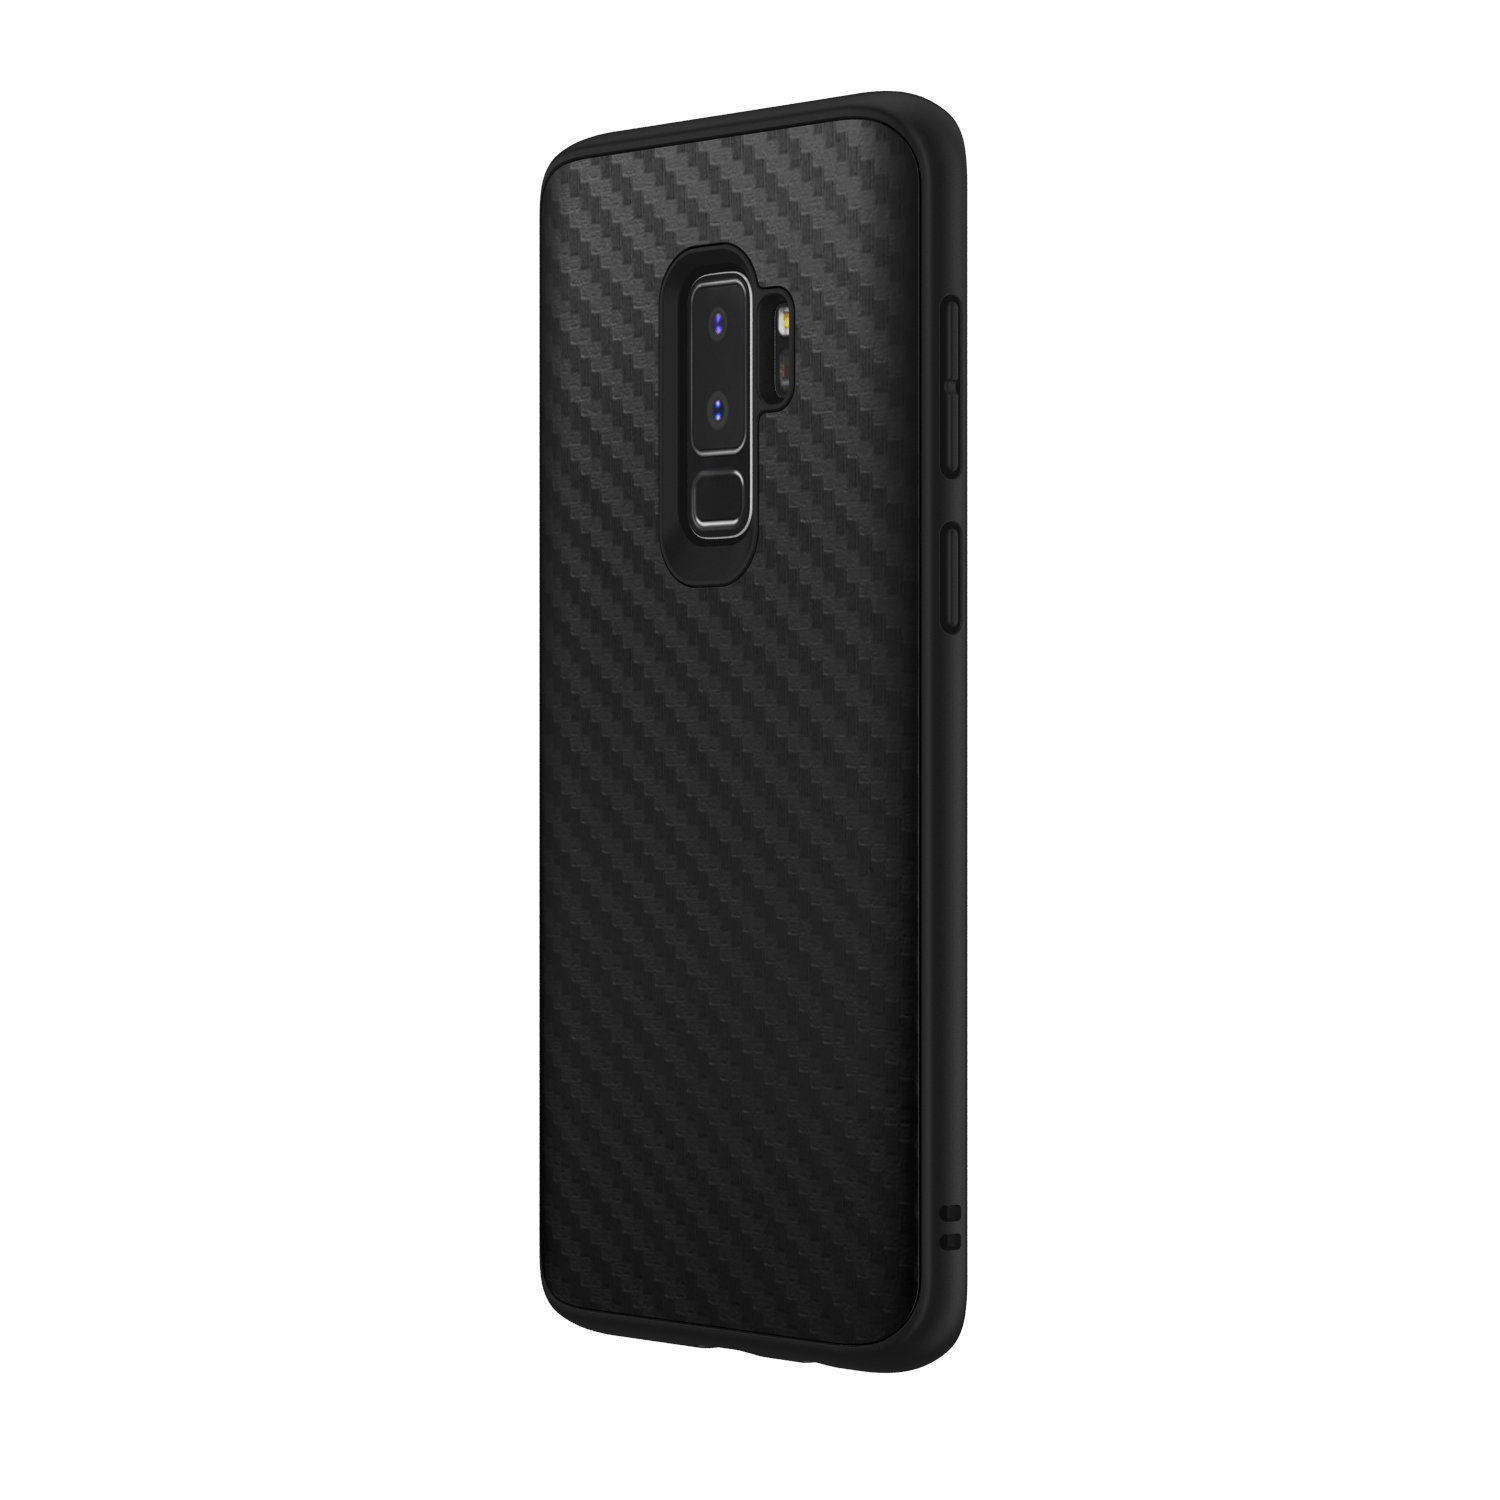 RhinoShield - SolidSuit for Samsung Galaxy S9 Plus